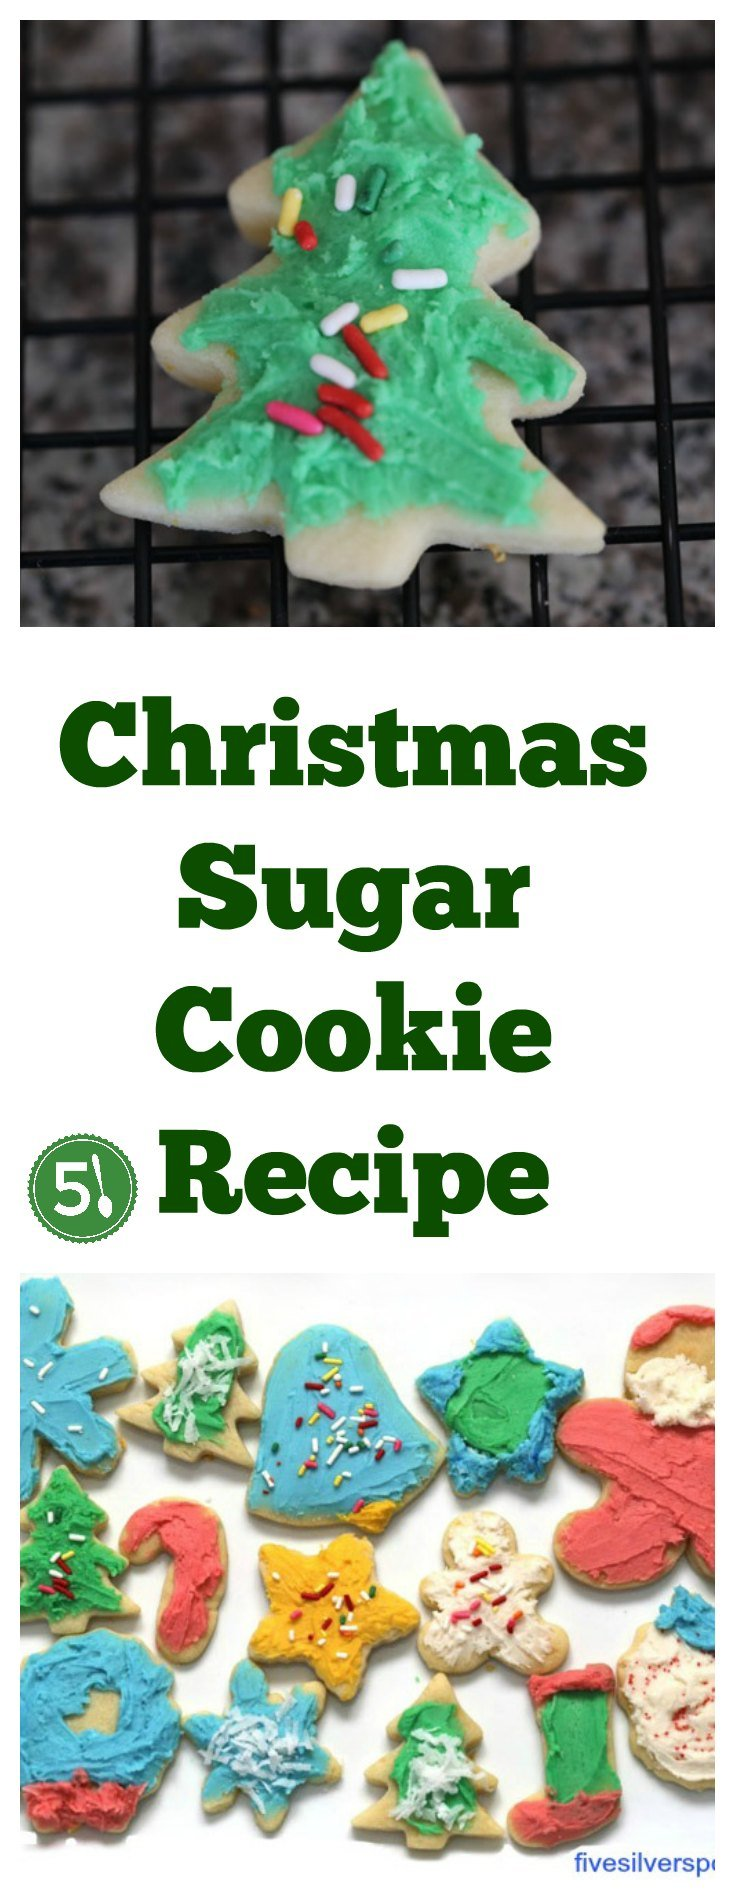 Easy Christmas Sugar Cookies Recipe for the Best Cut out cookies around!  Your kids will have so much fun coming up with decorating ideas for these yummy holiday cookies.